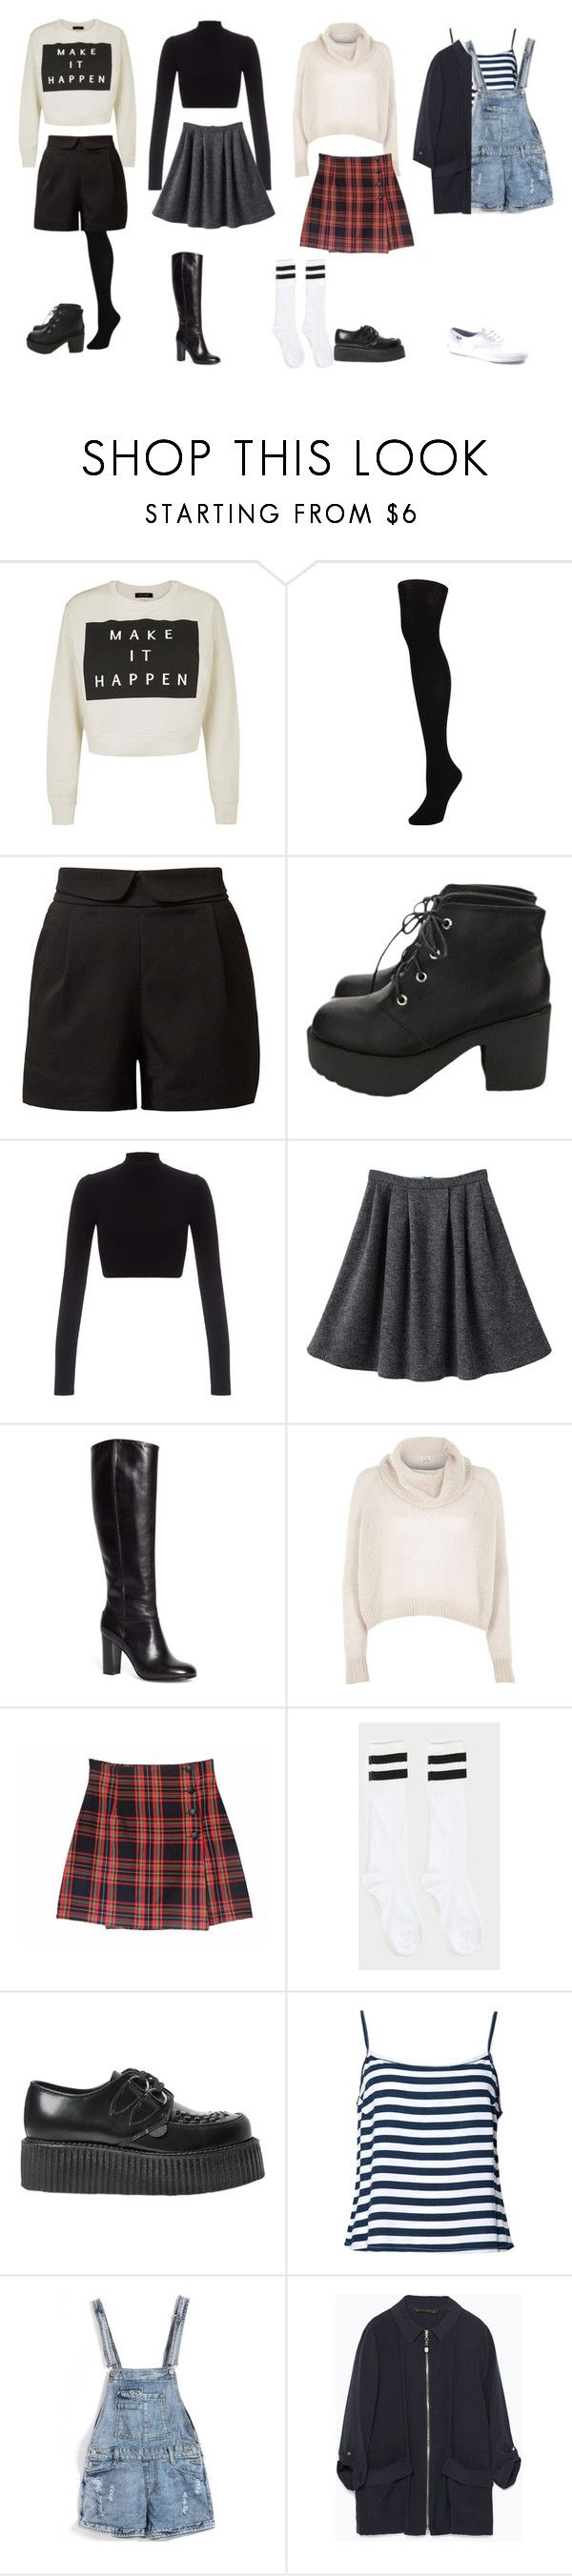 Designer Clothes Shoes Bags For Women Ssense Rachel Green Outfits Outfit Inspirations Fashion [ 2704 x 600 Pixel ]